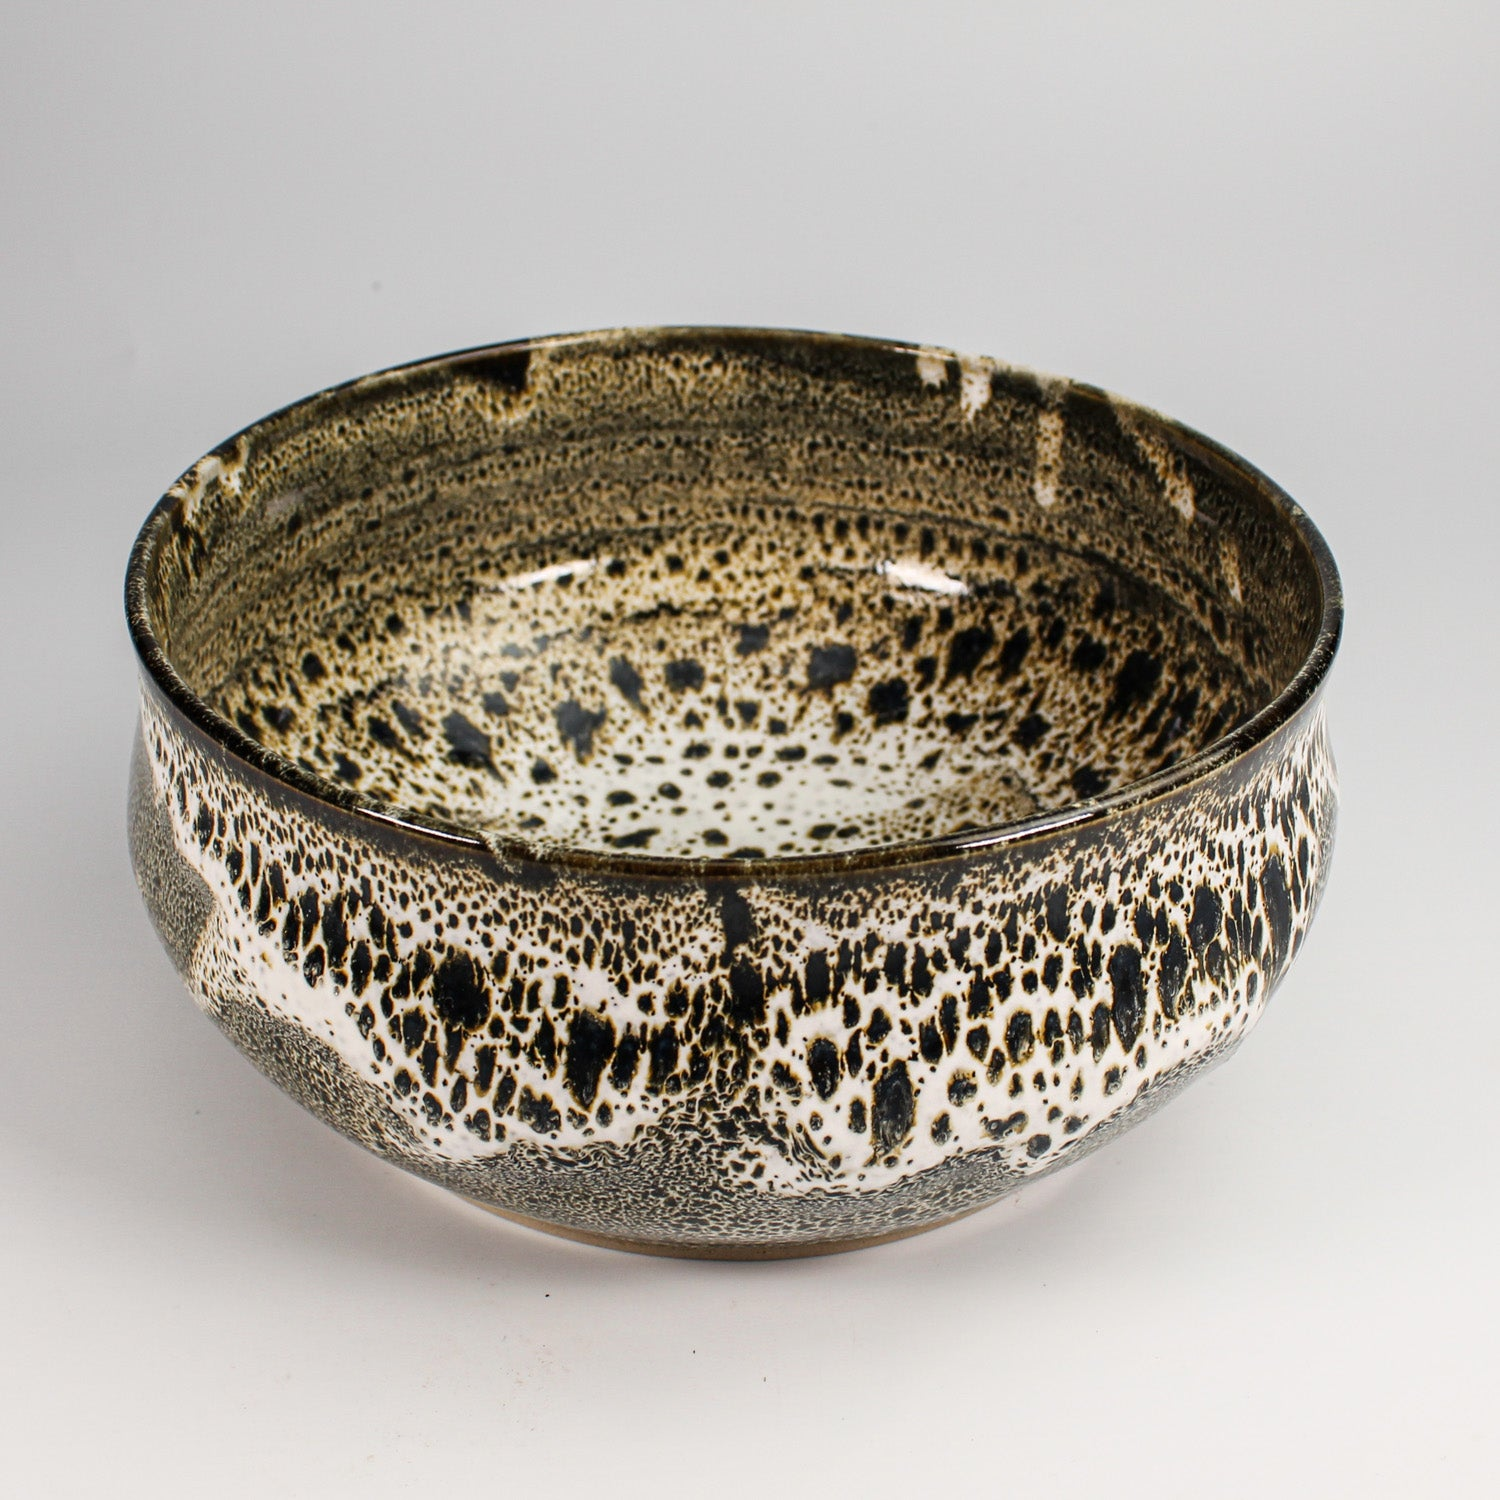 Stunning crocodile style glazed Japanese fruit bowl in brown and cream.